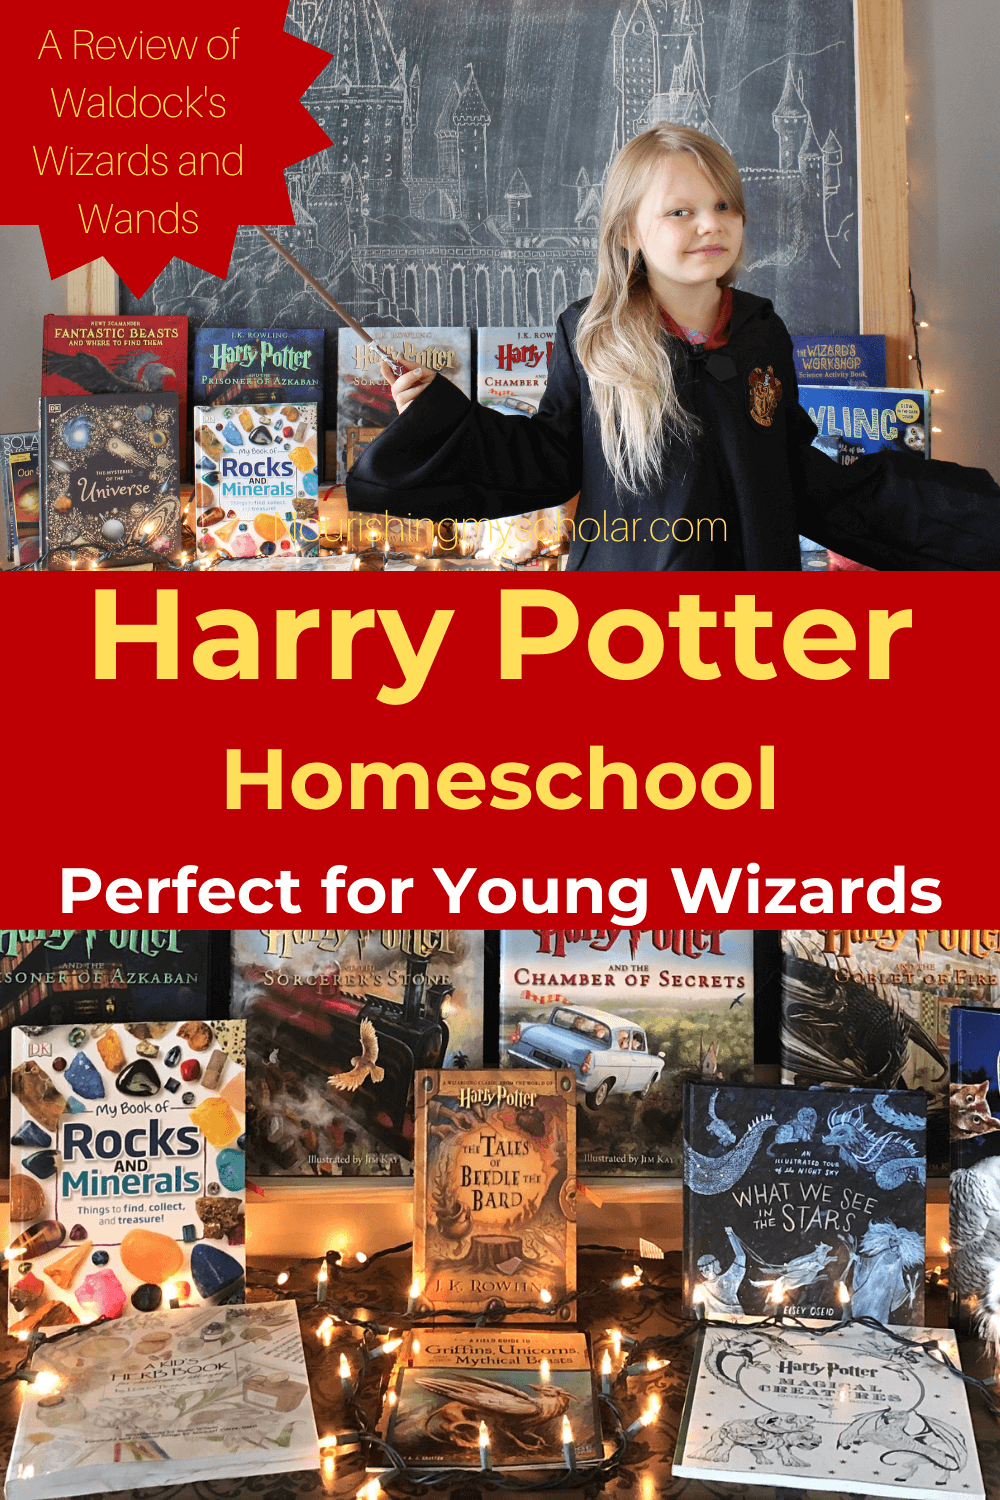 Harry Potter Homeschool Perfect for Young Wizards: Do your children love Harry Potter? Or maybe they love all things magical and mythical! If yes, then this Harry Potter homeschool is for you! #WaldocksWizardsandWands #HarryPotter #HarryPotterhomeschool #Wizardschool #WizardsandWands #homeschool #HarryPottercurriculum #HarryPotterunitstudy